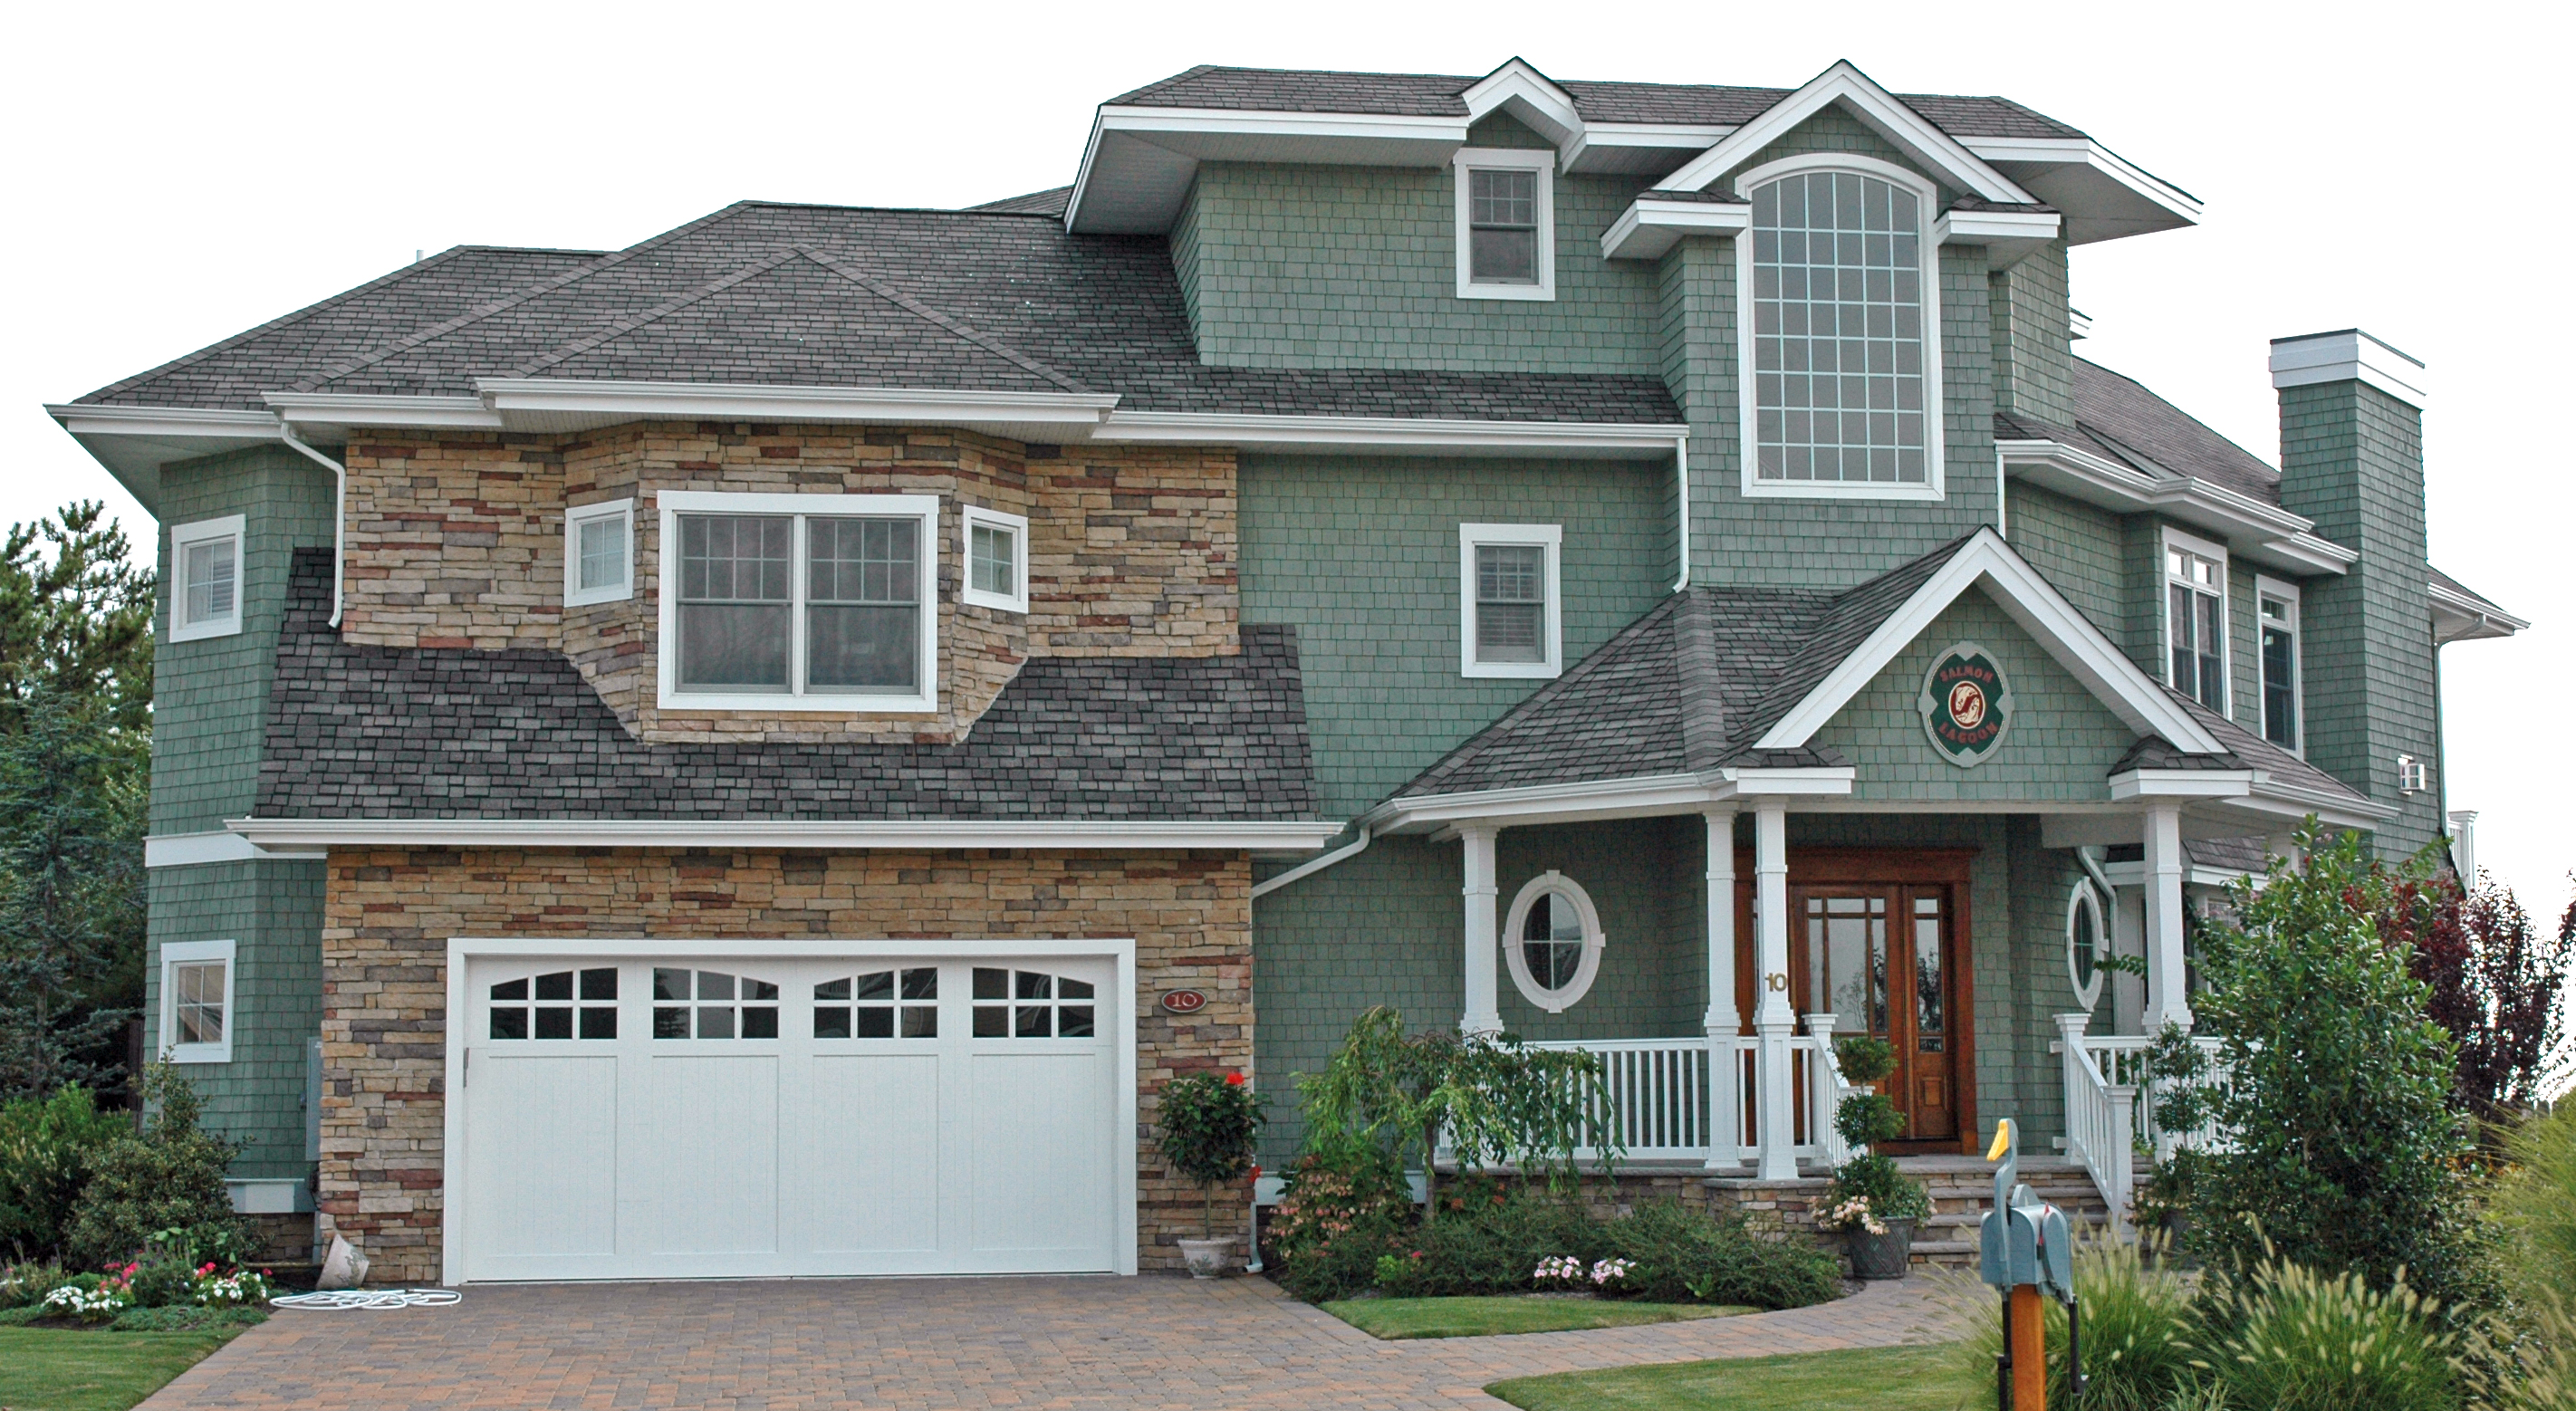 File Beach House In New Jersey With Asphalt Shingles Jpg